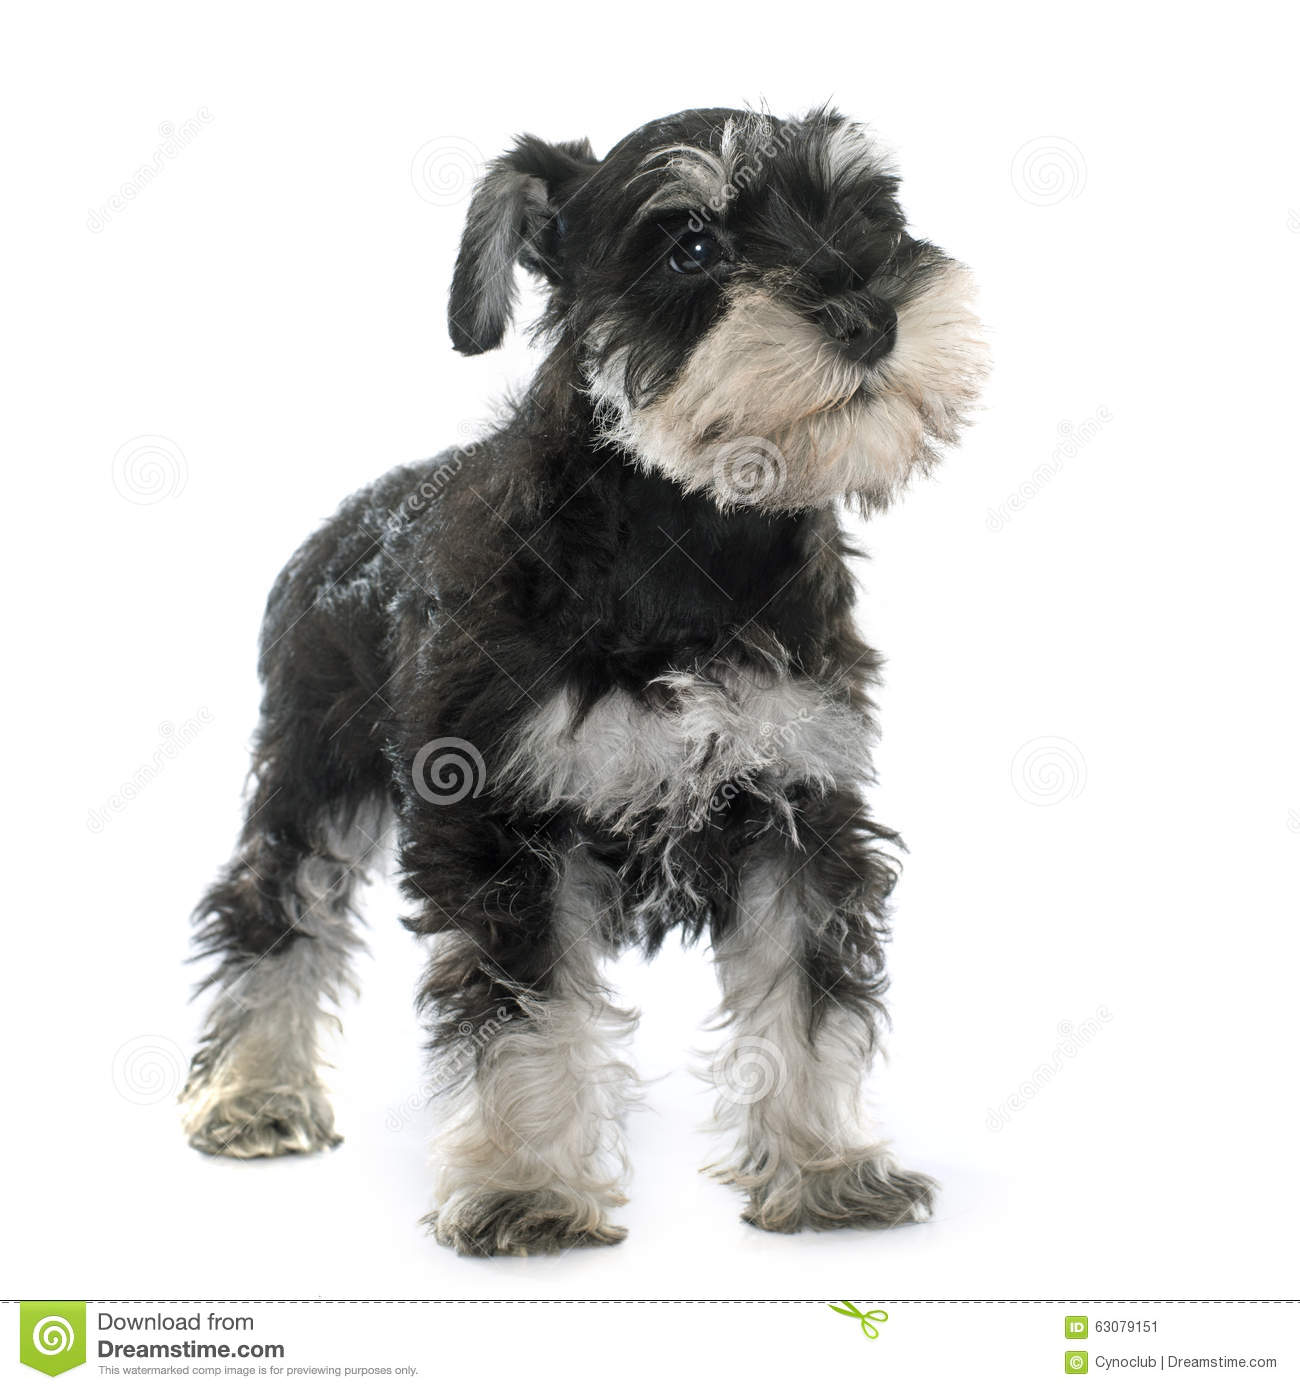 Download Schnauzer Miniature De Chiot Image stock - Image du chiot, miniature: 63079151